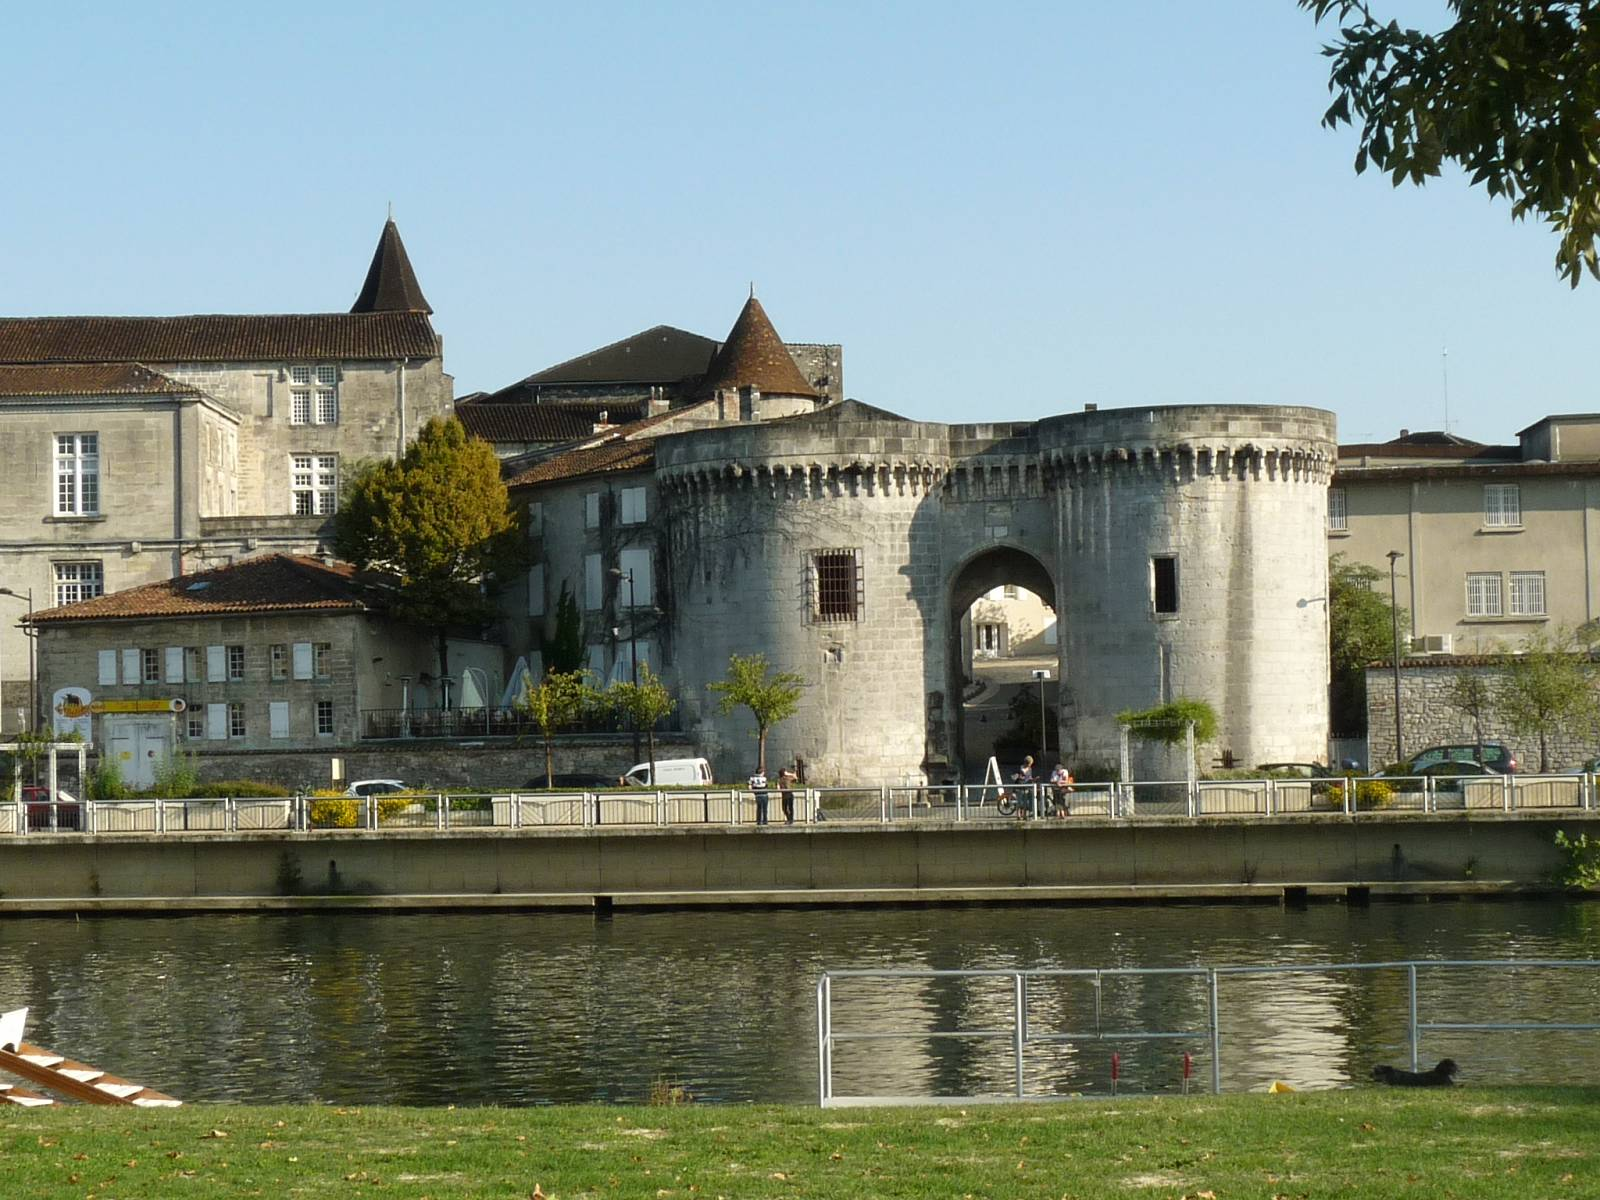 Town of Cognac (Porte St Jacques)